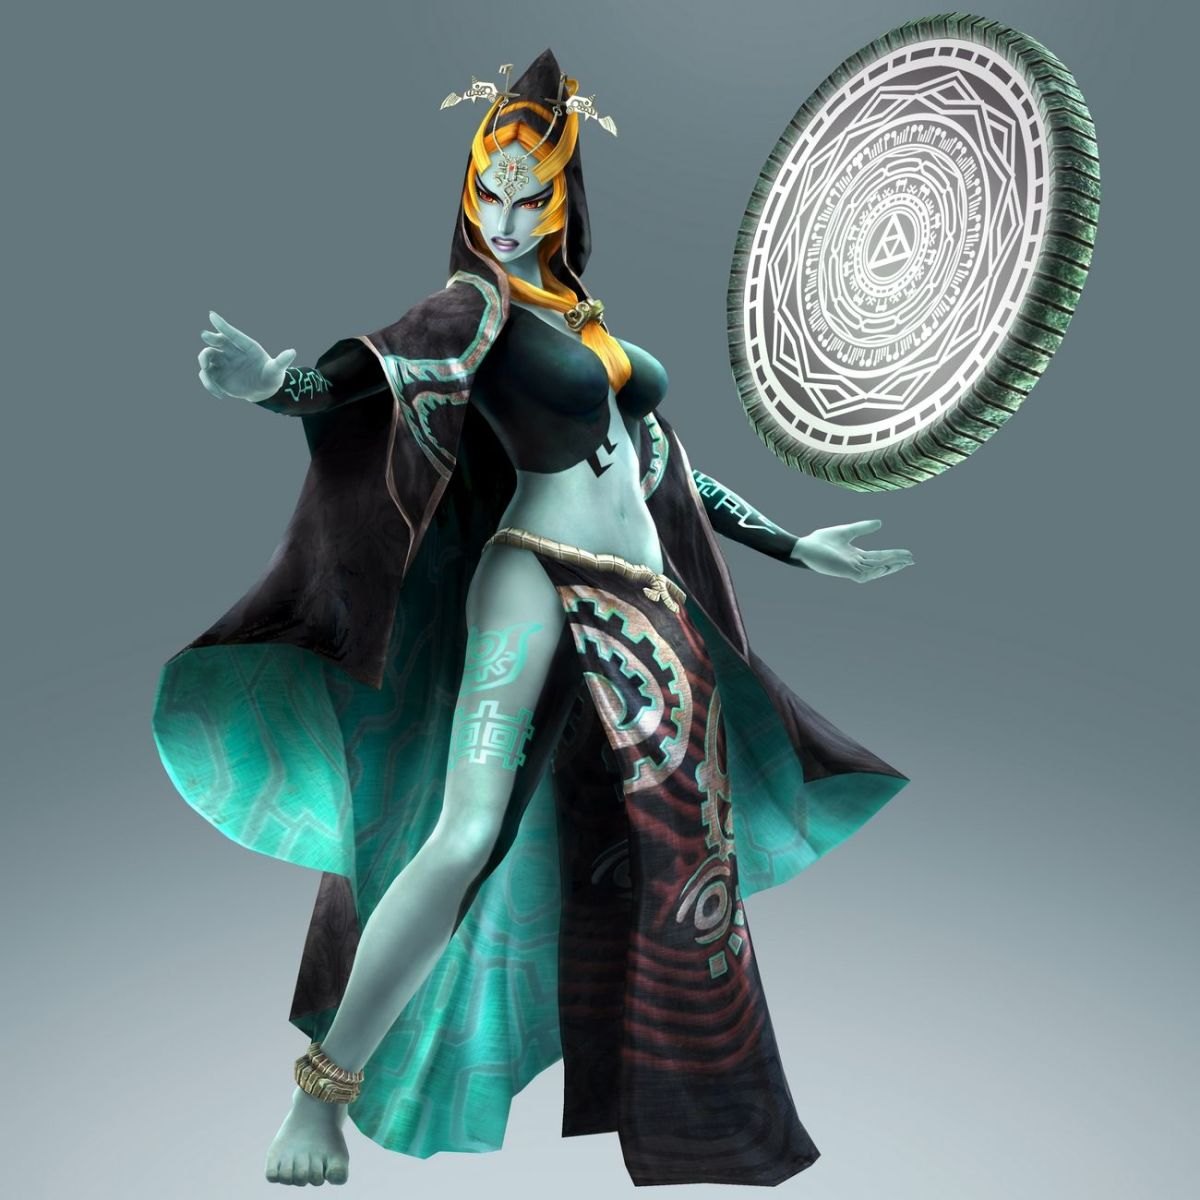 Midna, once she sheds the imp form Ganon forced her to take.